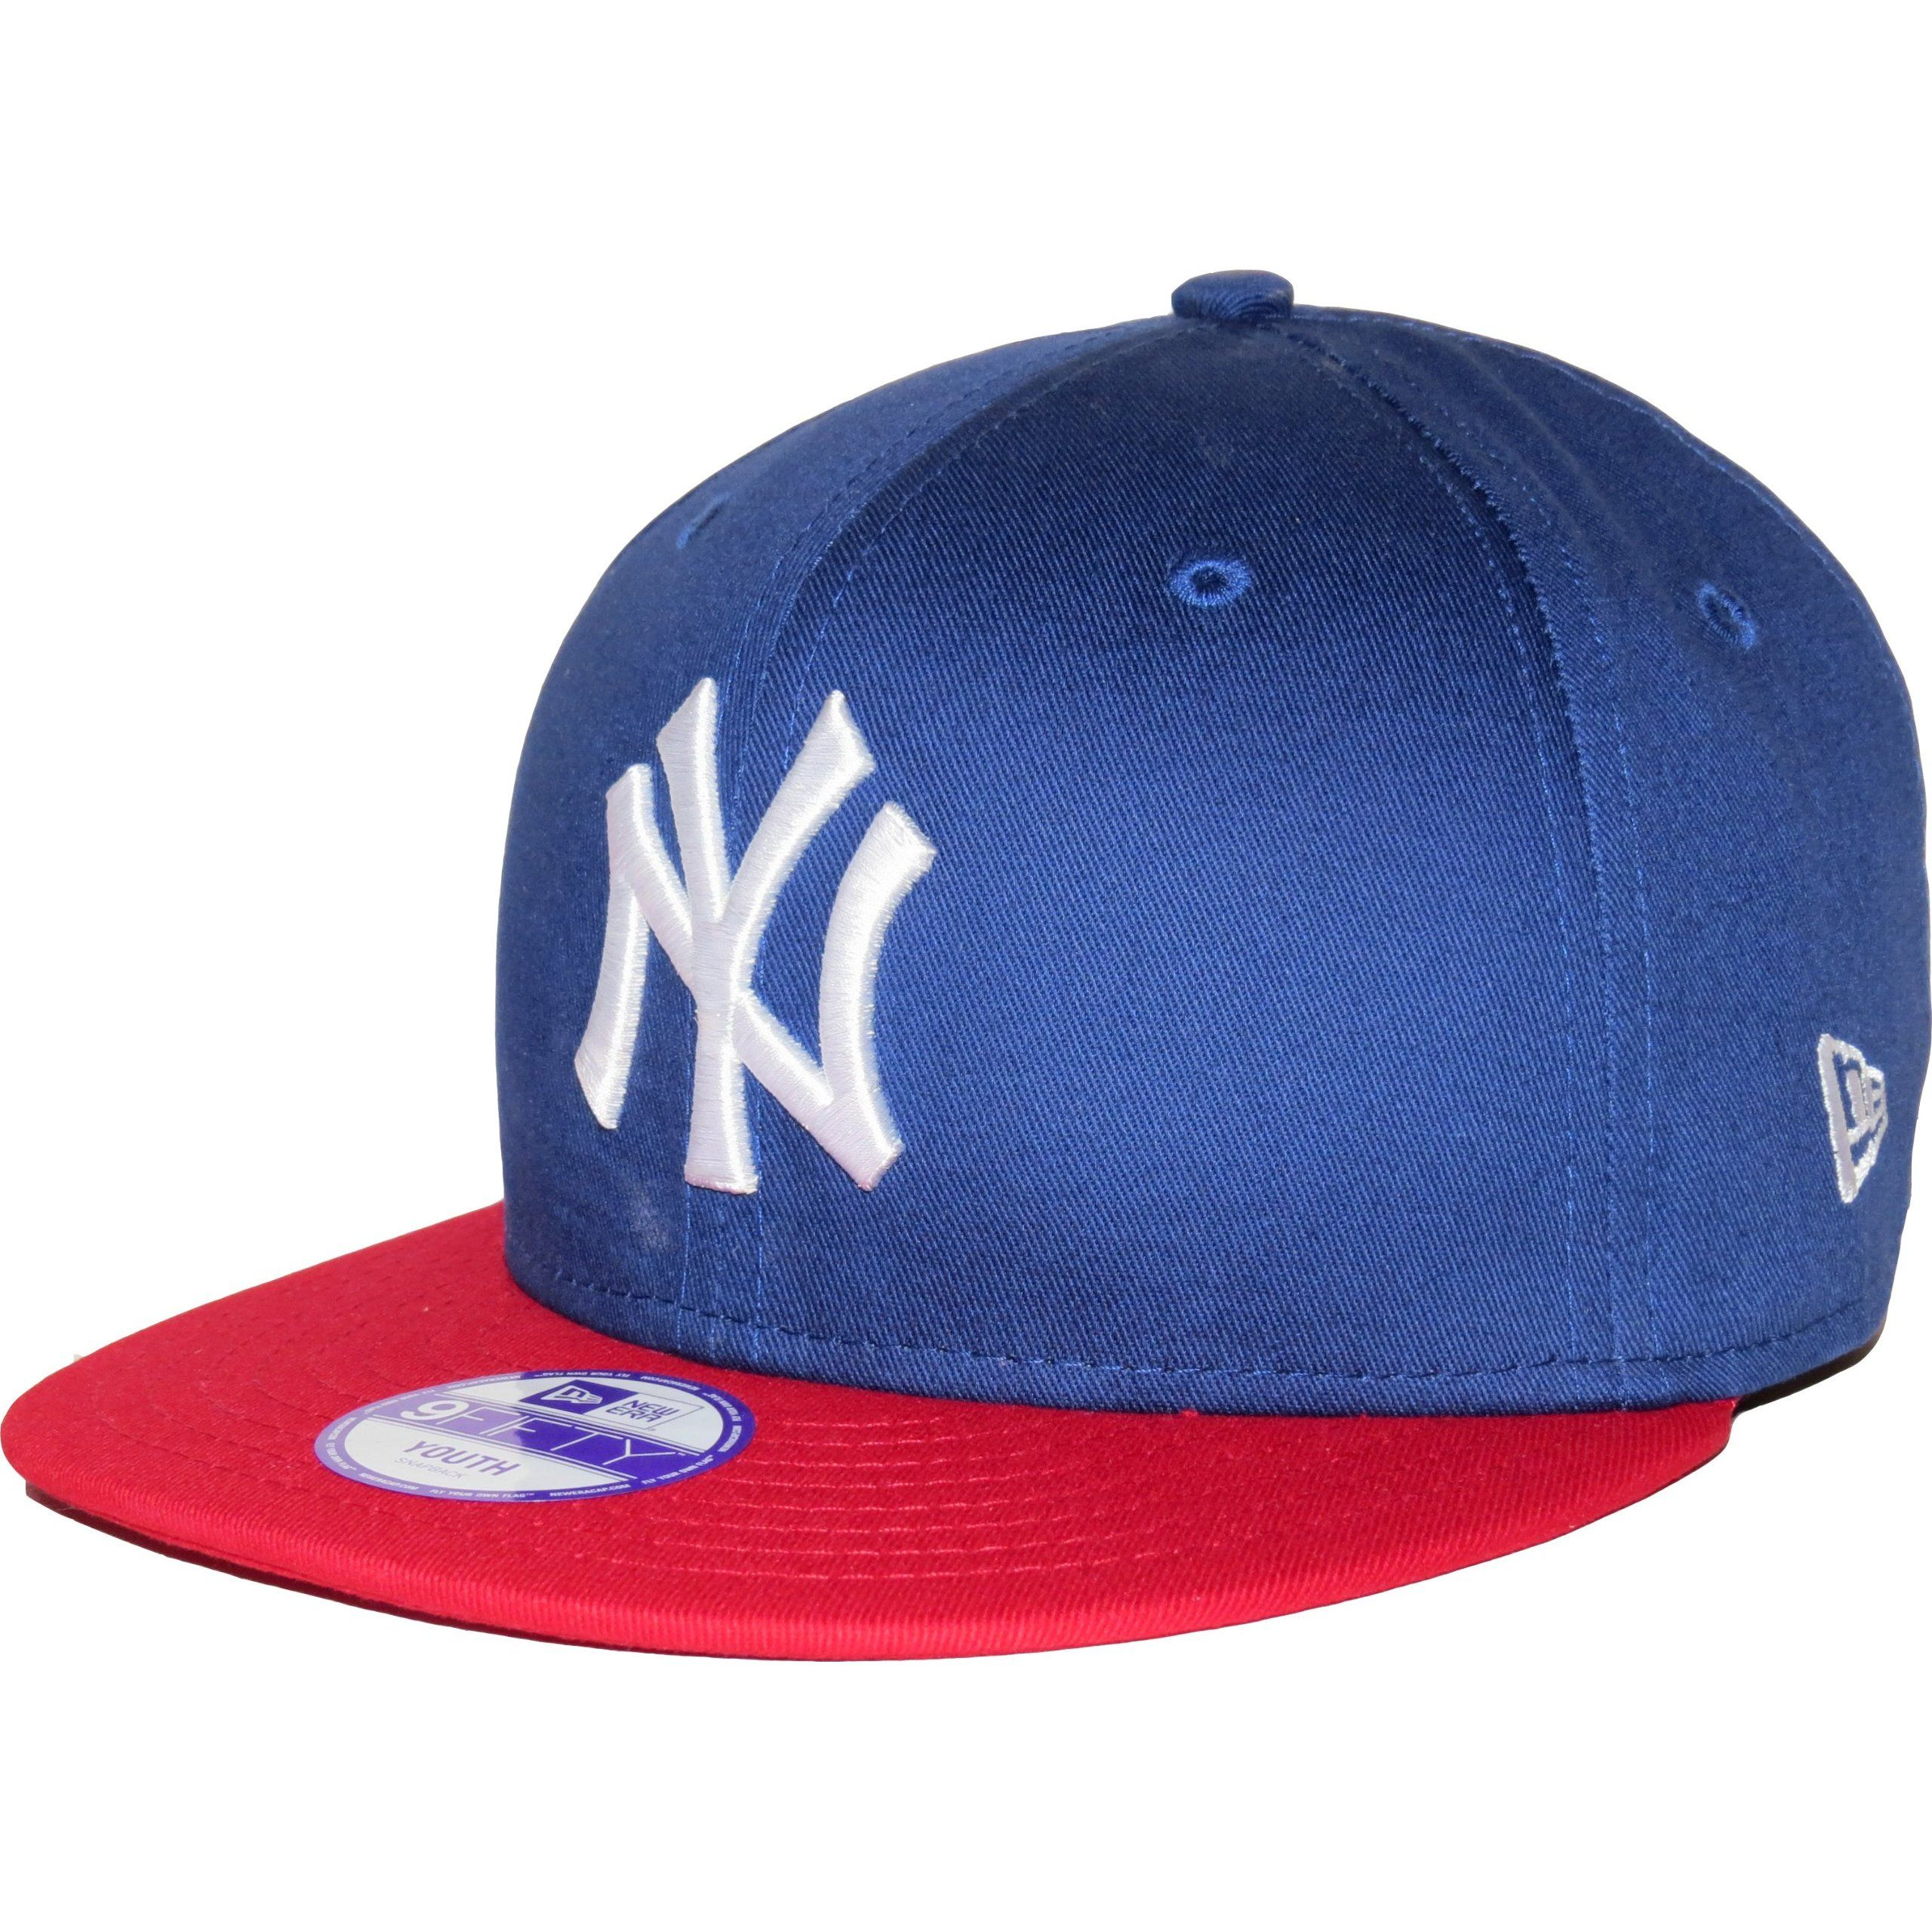 b48243e8eb5 New Era 9Fifty Kids Cotton Block NY Yankees Blue Red Snapback Cap   New Era